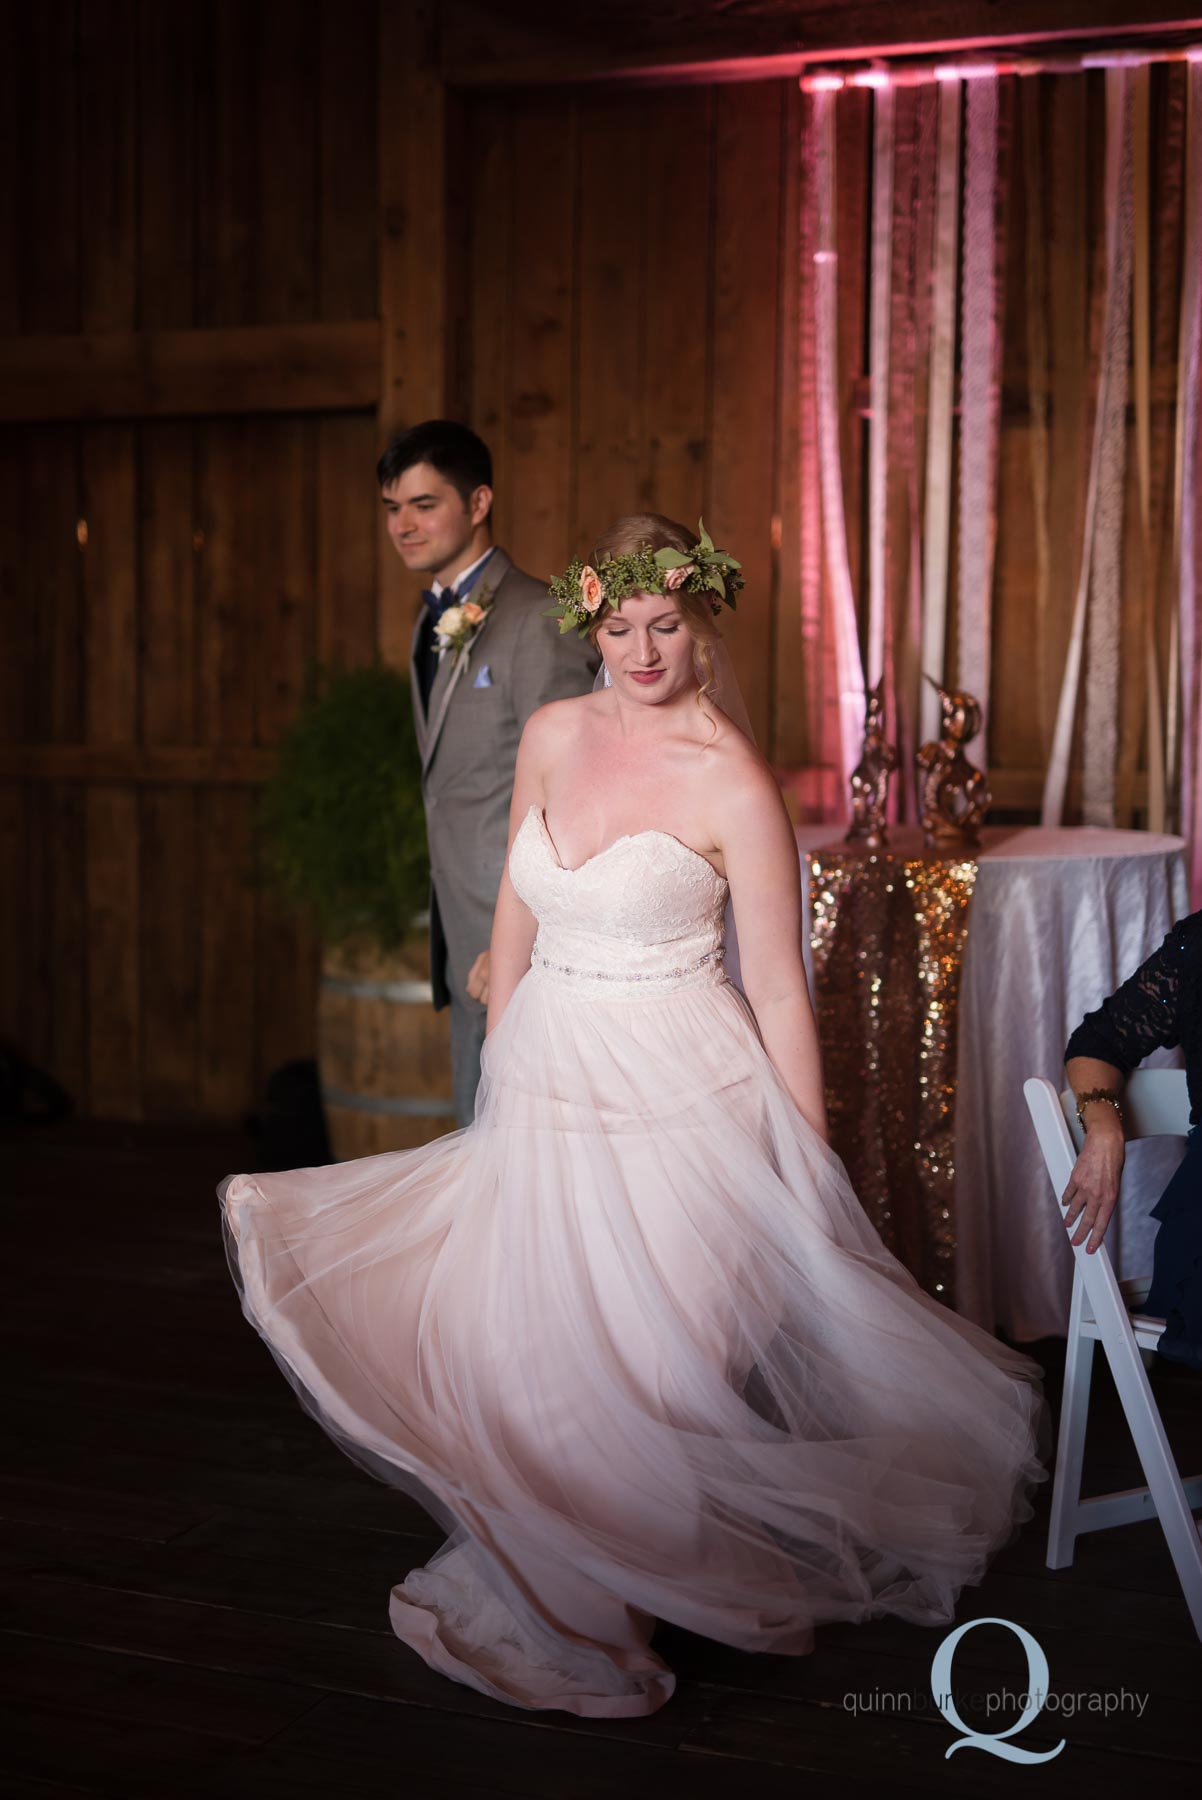 Perryhill Farm barn wedding oregon